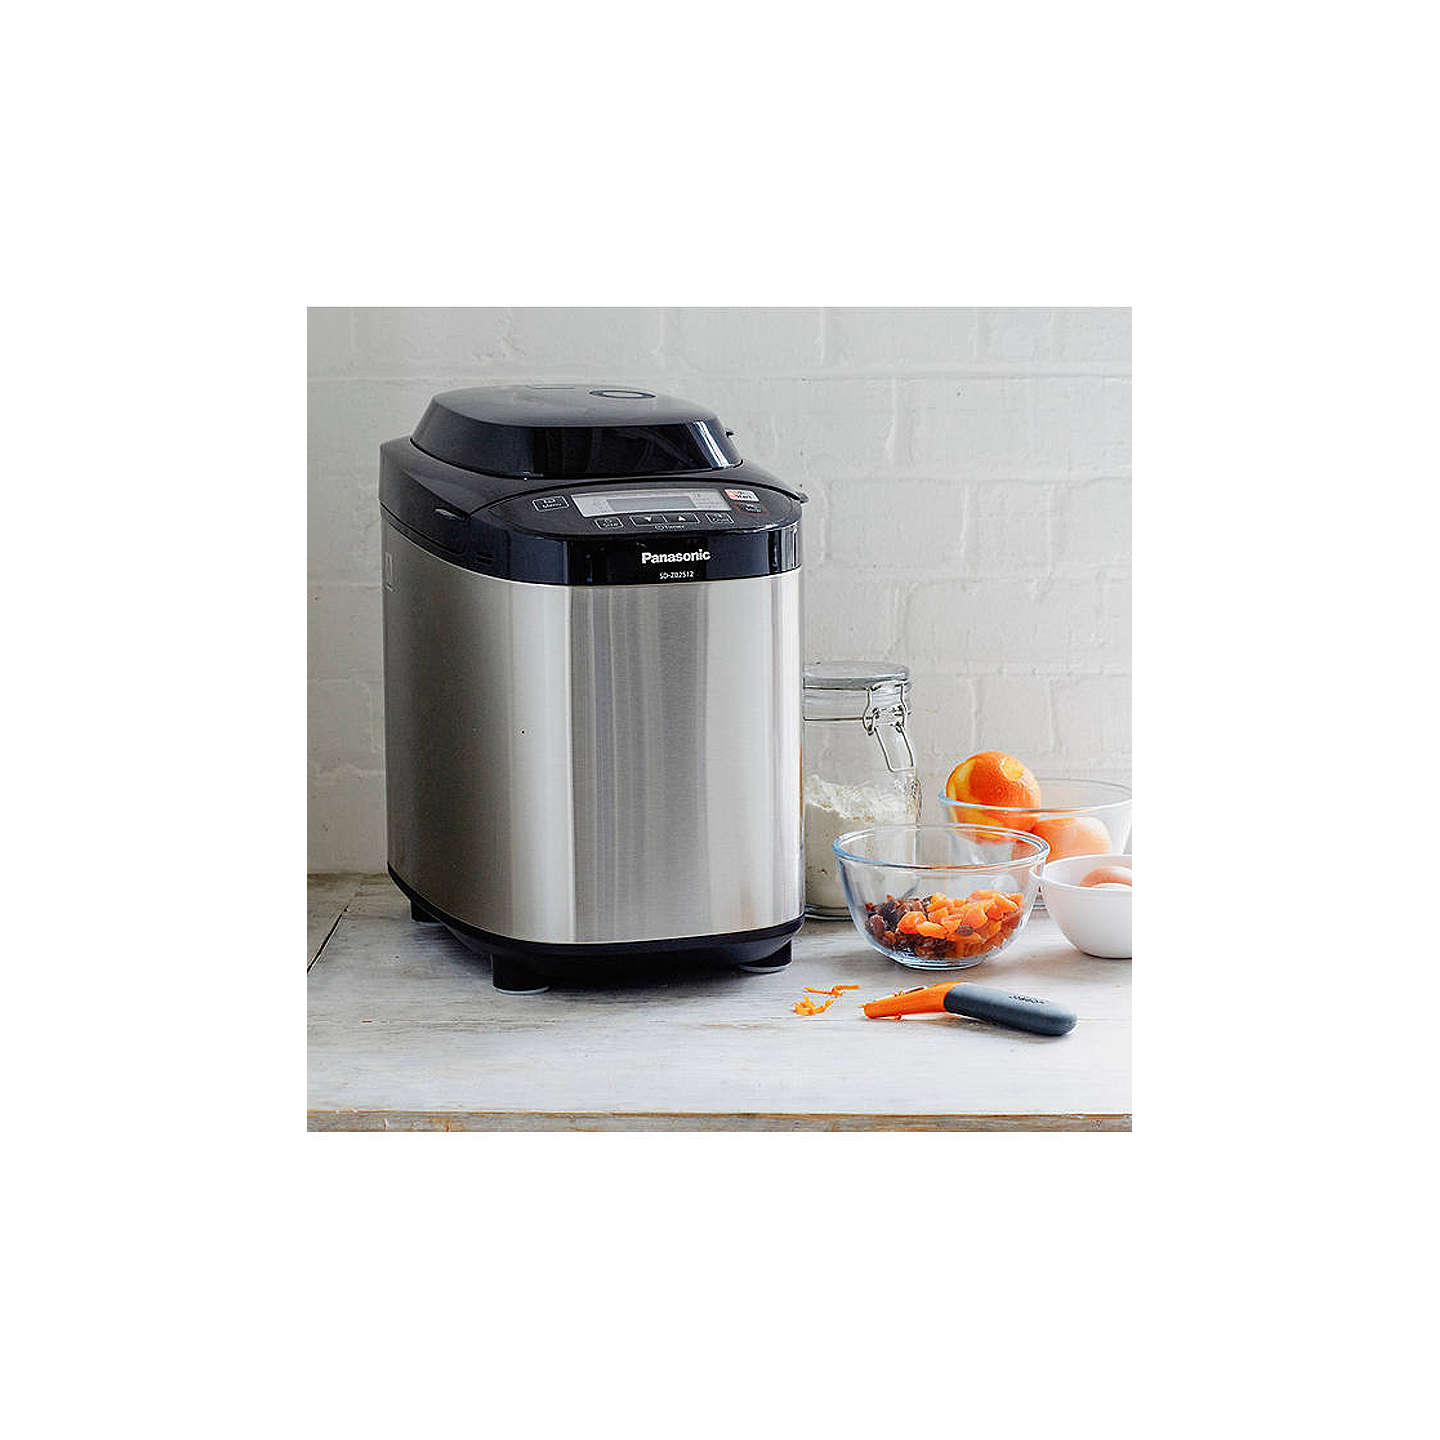 BuyPanasonic SD-ZB2512KXC Bread Maker, Stainless Steel Online at johnlewis.com